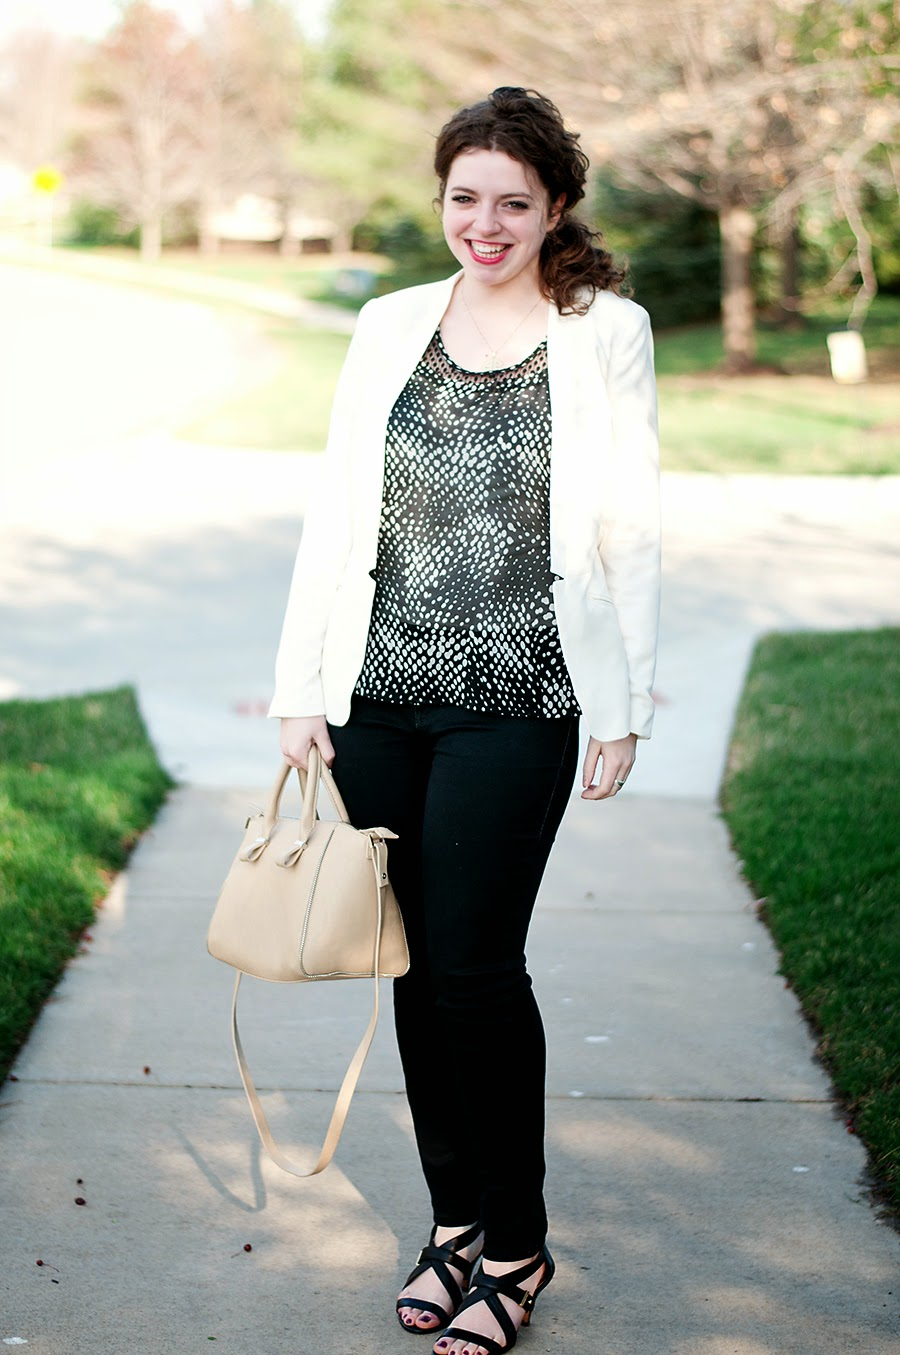 Black and white polka dott outfit for spring